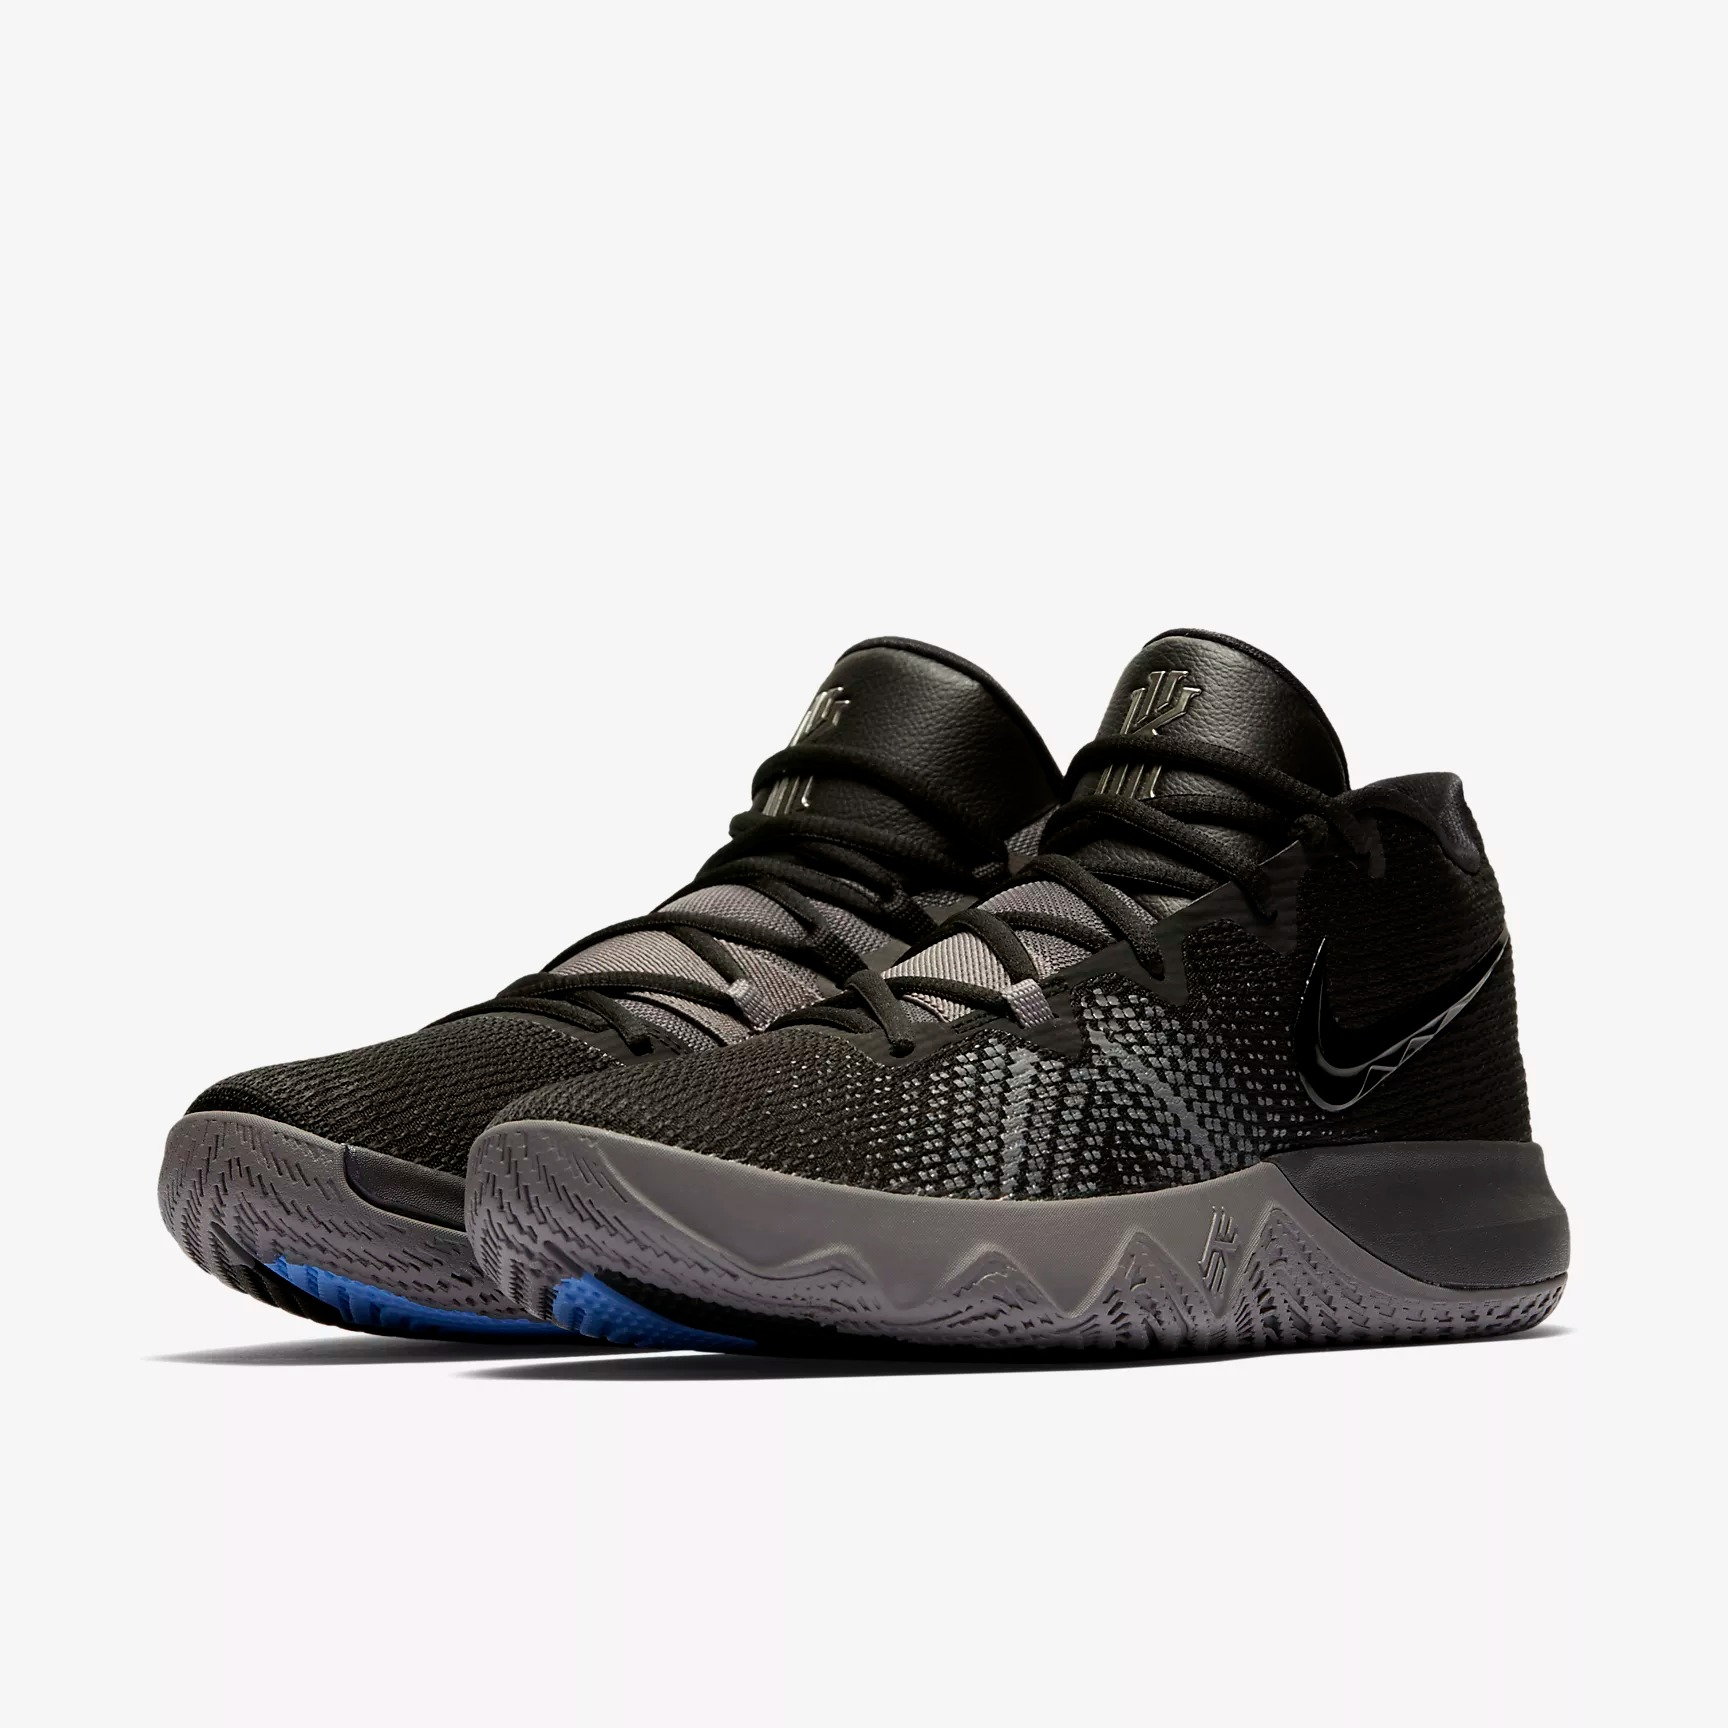 5354f14044e0 Nike Kyrie Flytrap Basketball Shoes - BASKETBALL SHOES NIKE Basketball Shoes  - Superfanas.lt